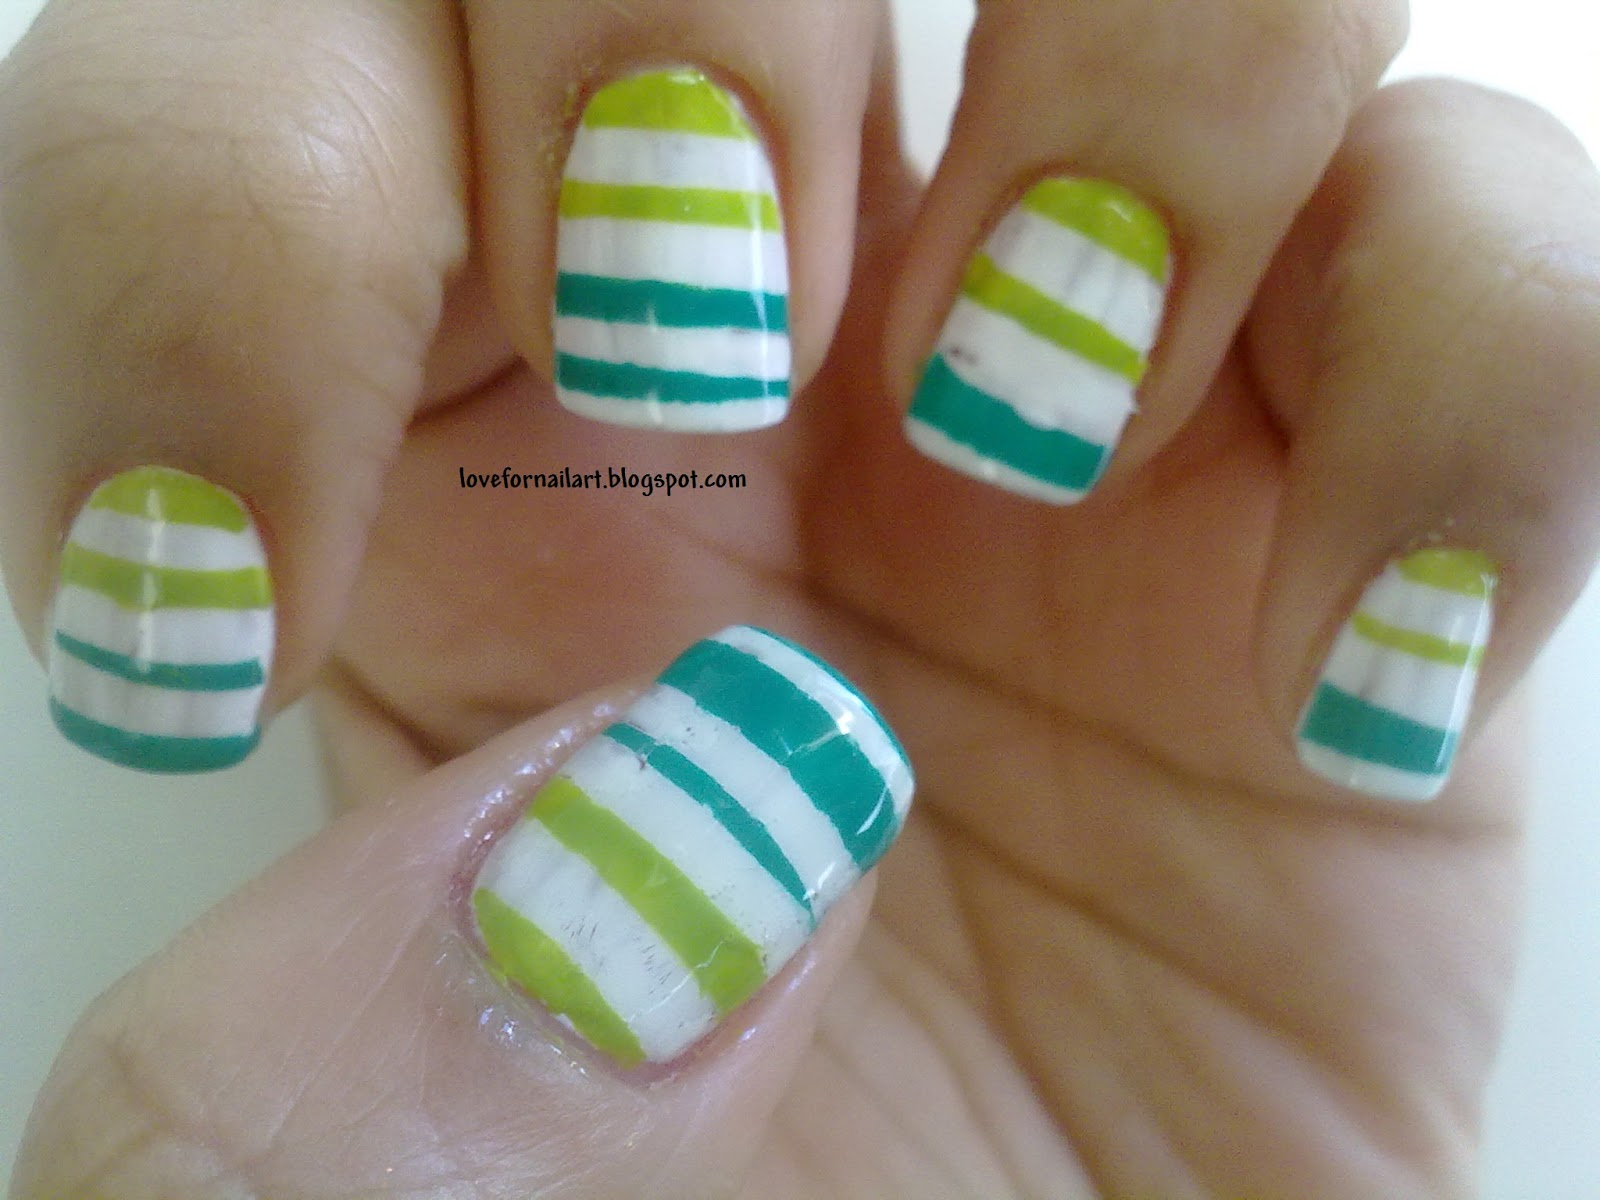 Love For Nail Art: Stripes nail art using scotch tape